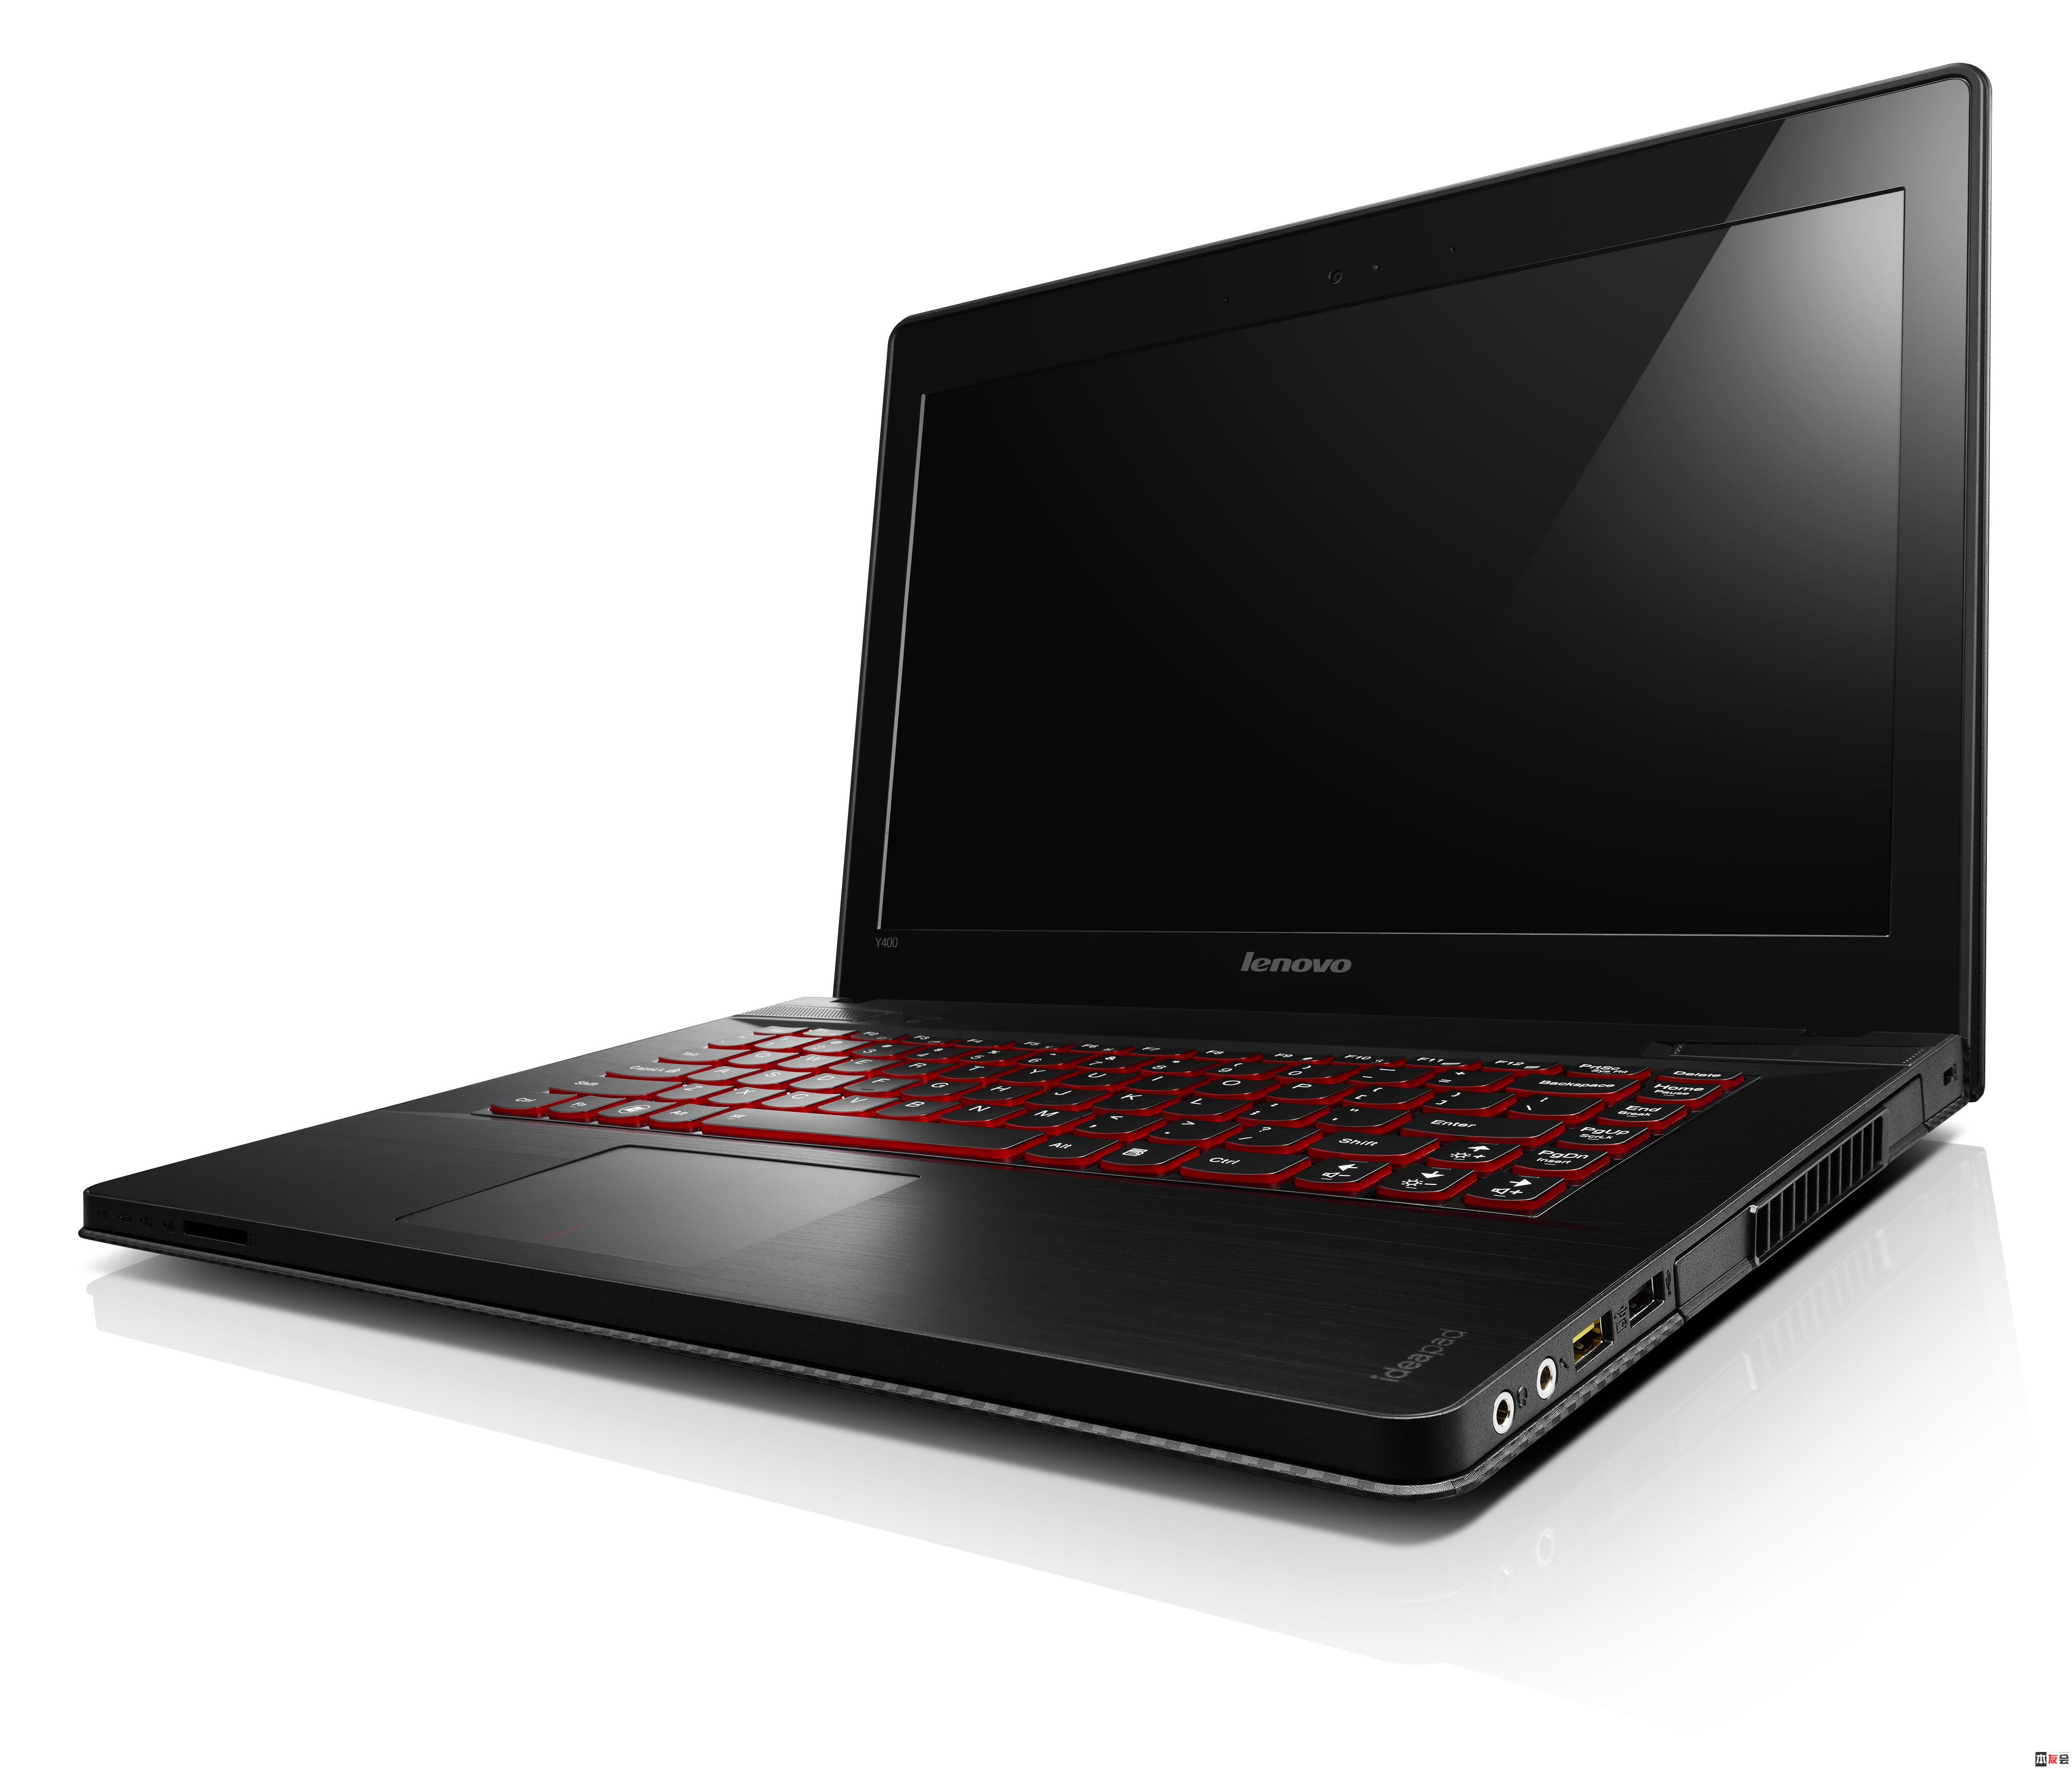 Best Gaming Laptops and Notebooks Holiday 2013